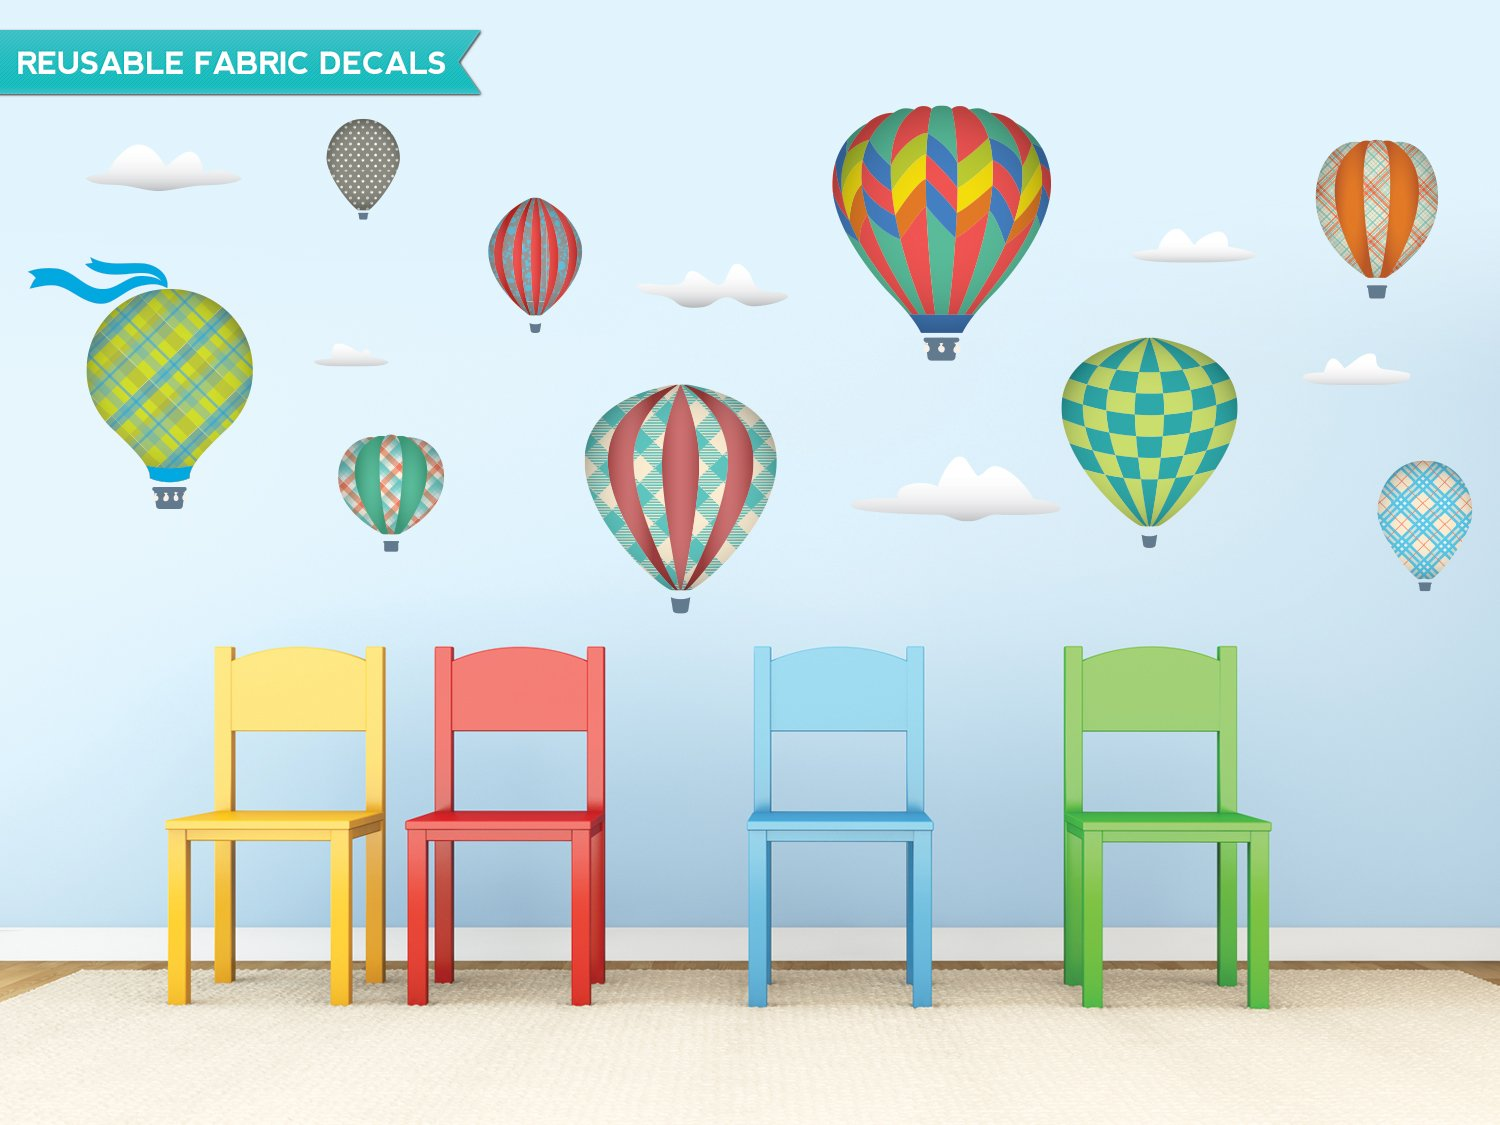 Sunny Decals Hot Air Balloons and Clouds Fabric Wall Decals (Set of 9), Jumbo, Rainbow